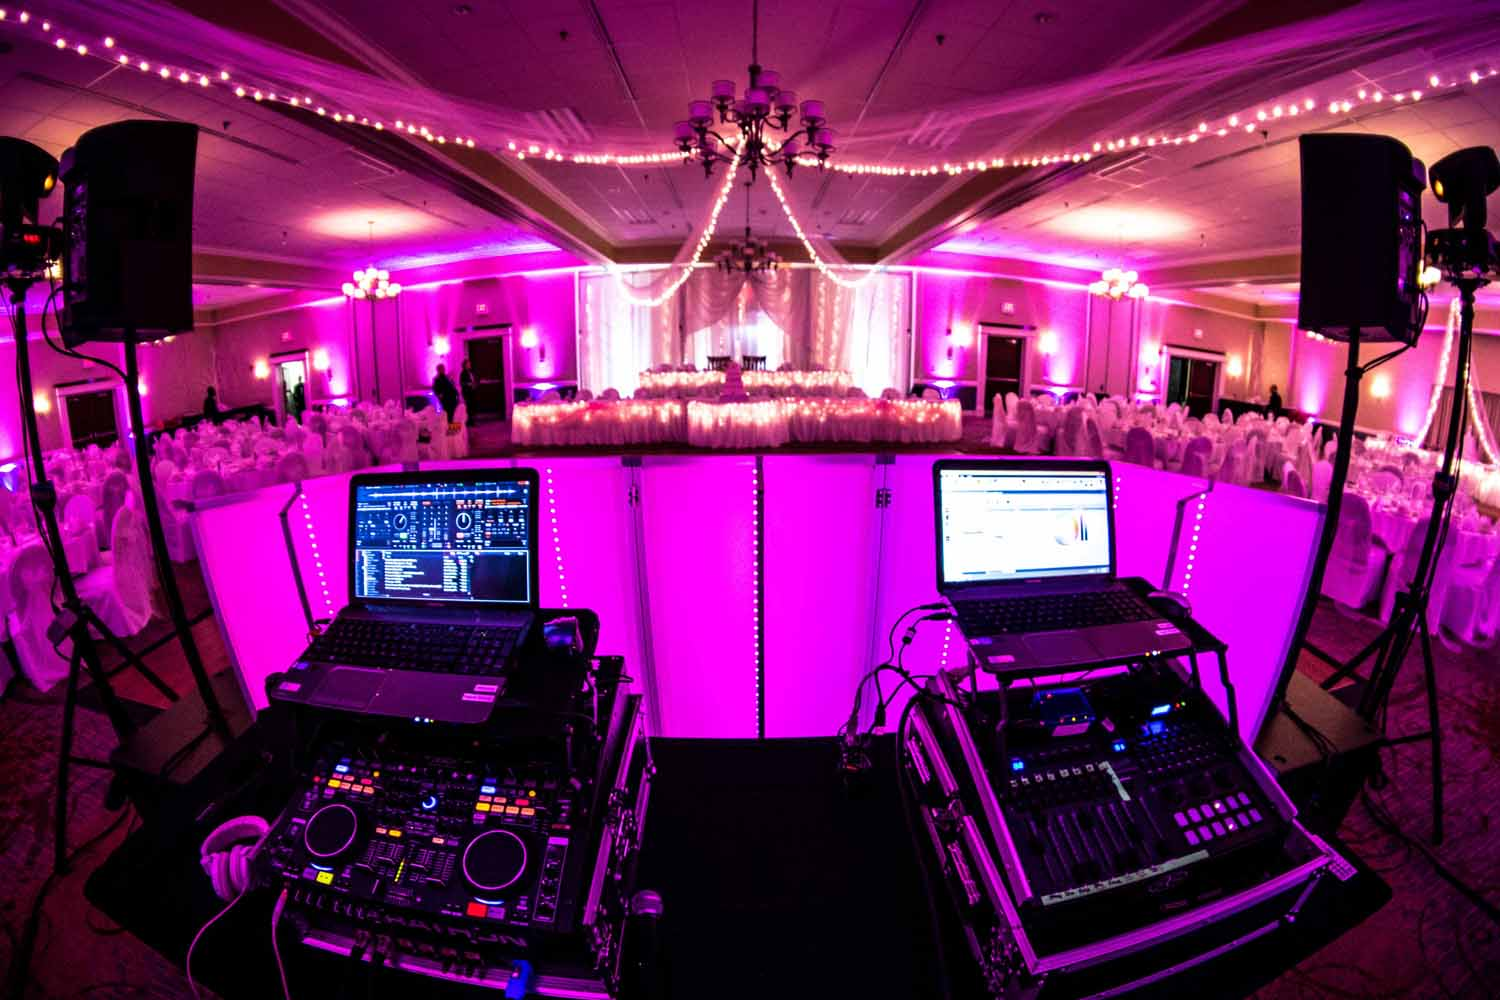 DJ and lighting setup